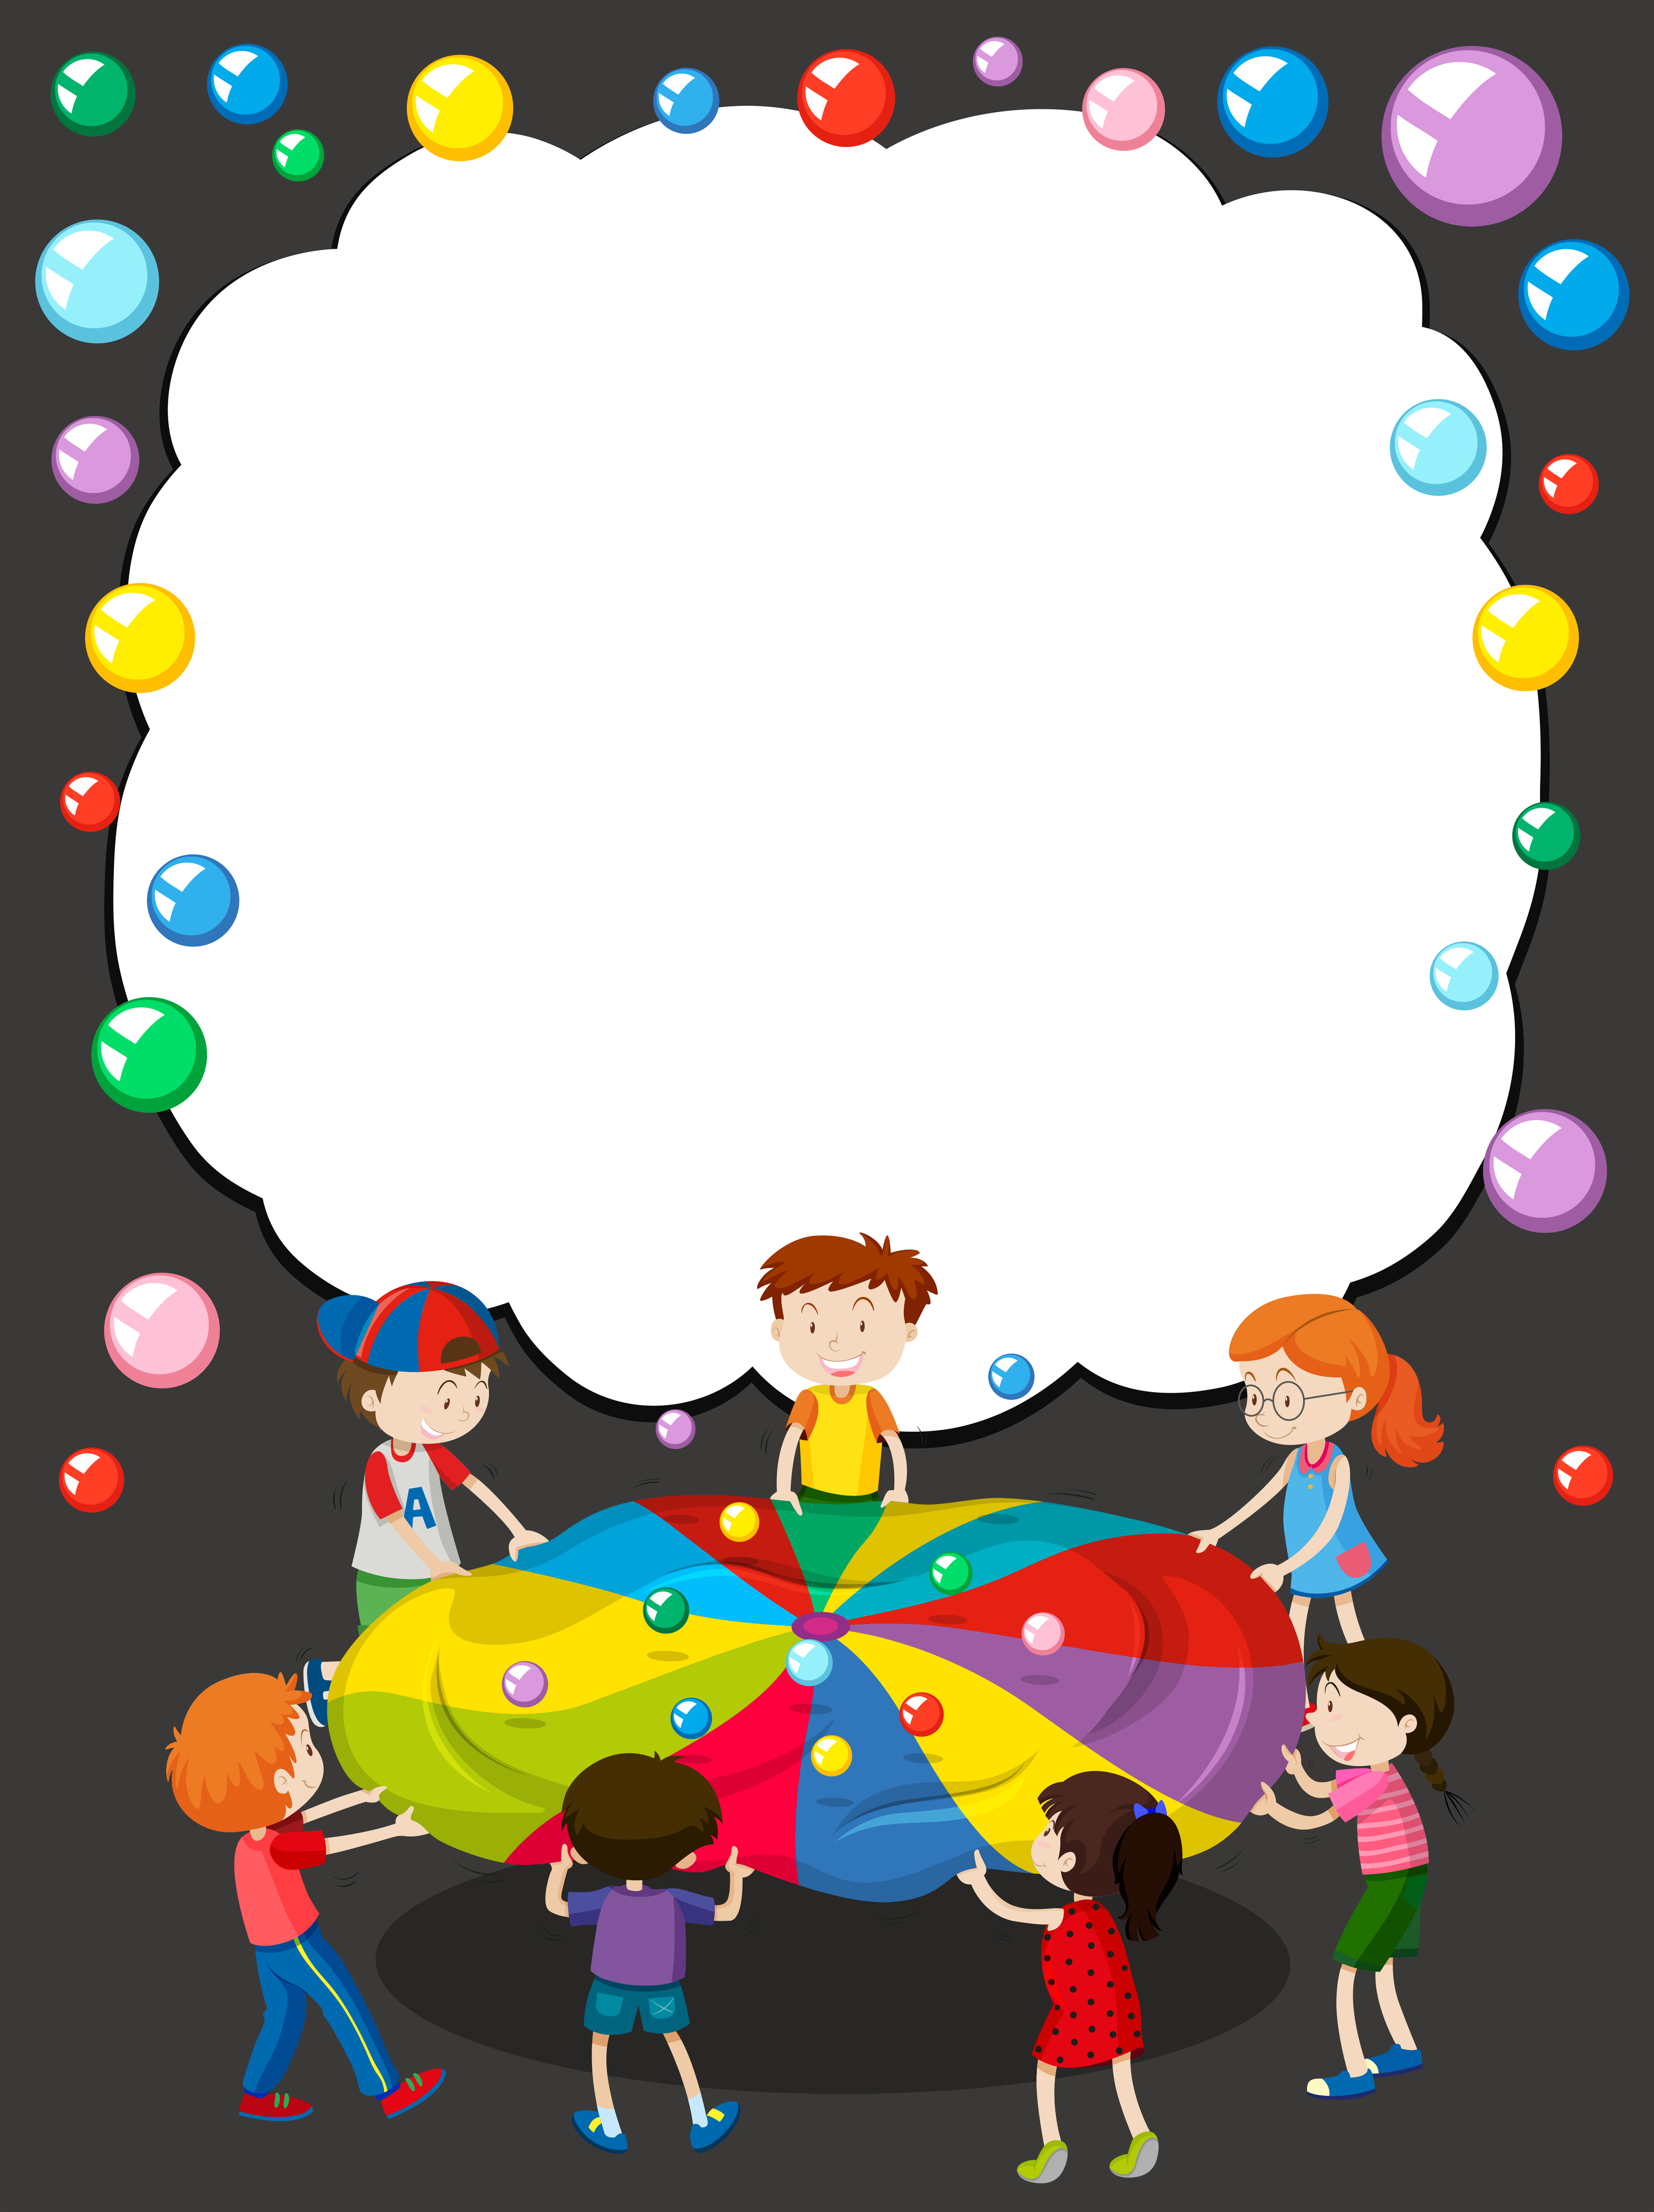 Border template with children playing ball - Download Free ...